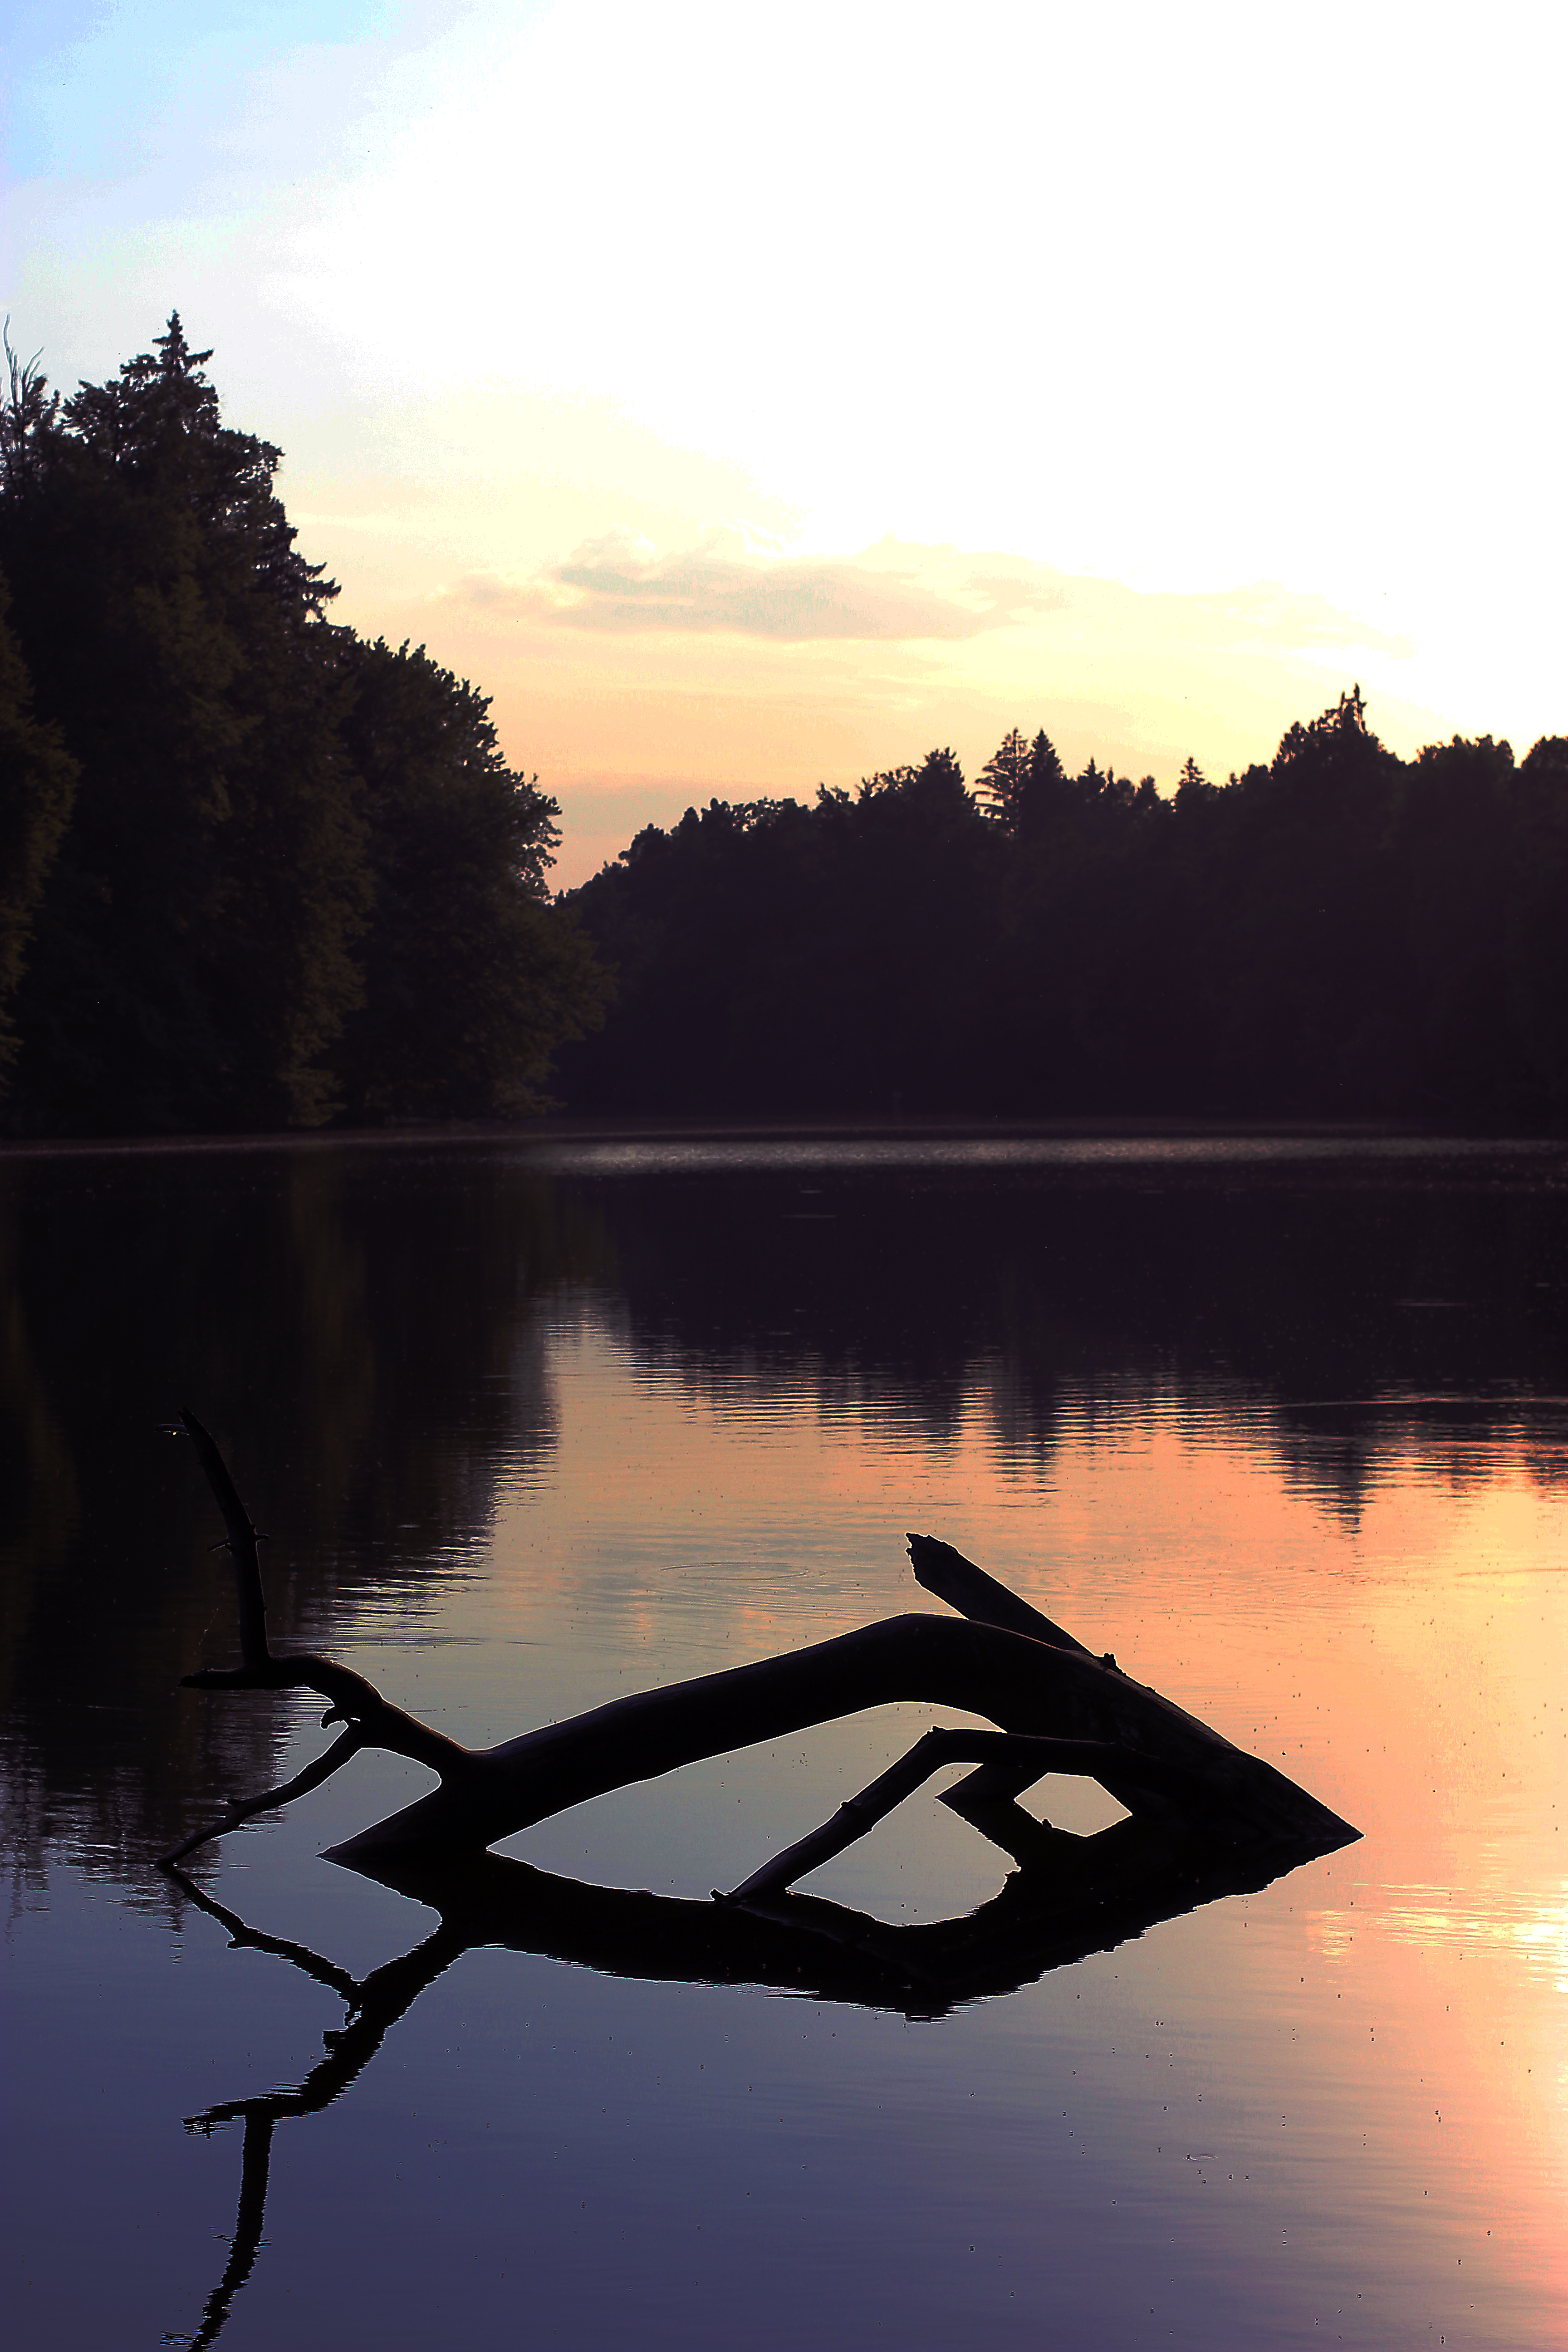 135091 download wallpaper Nature, Lake, Trees, Dusk, Twilight, Snag, Forest screensavers and pictures for free